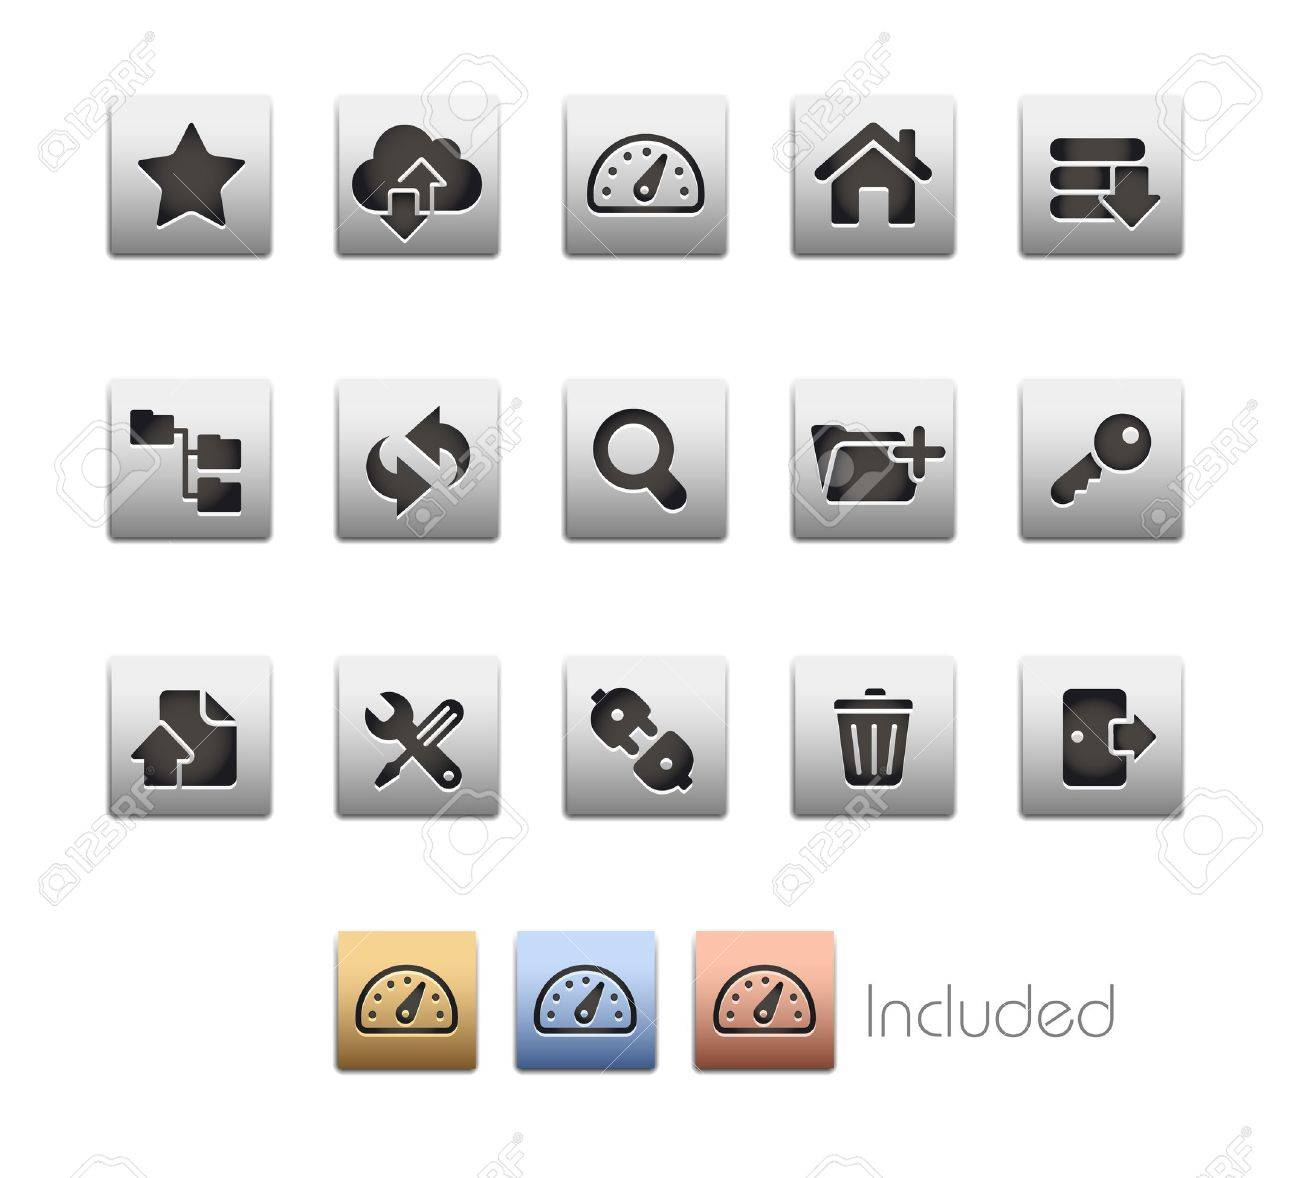 Hosting Icons - The set includes 4 color versions for each icon in different layers Stock Vector - 21686271